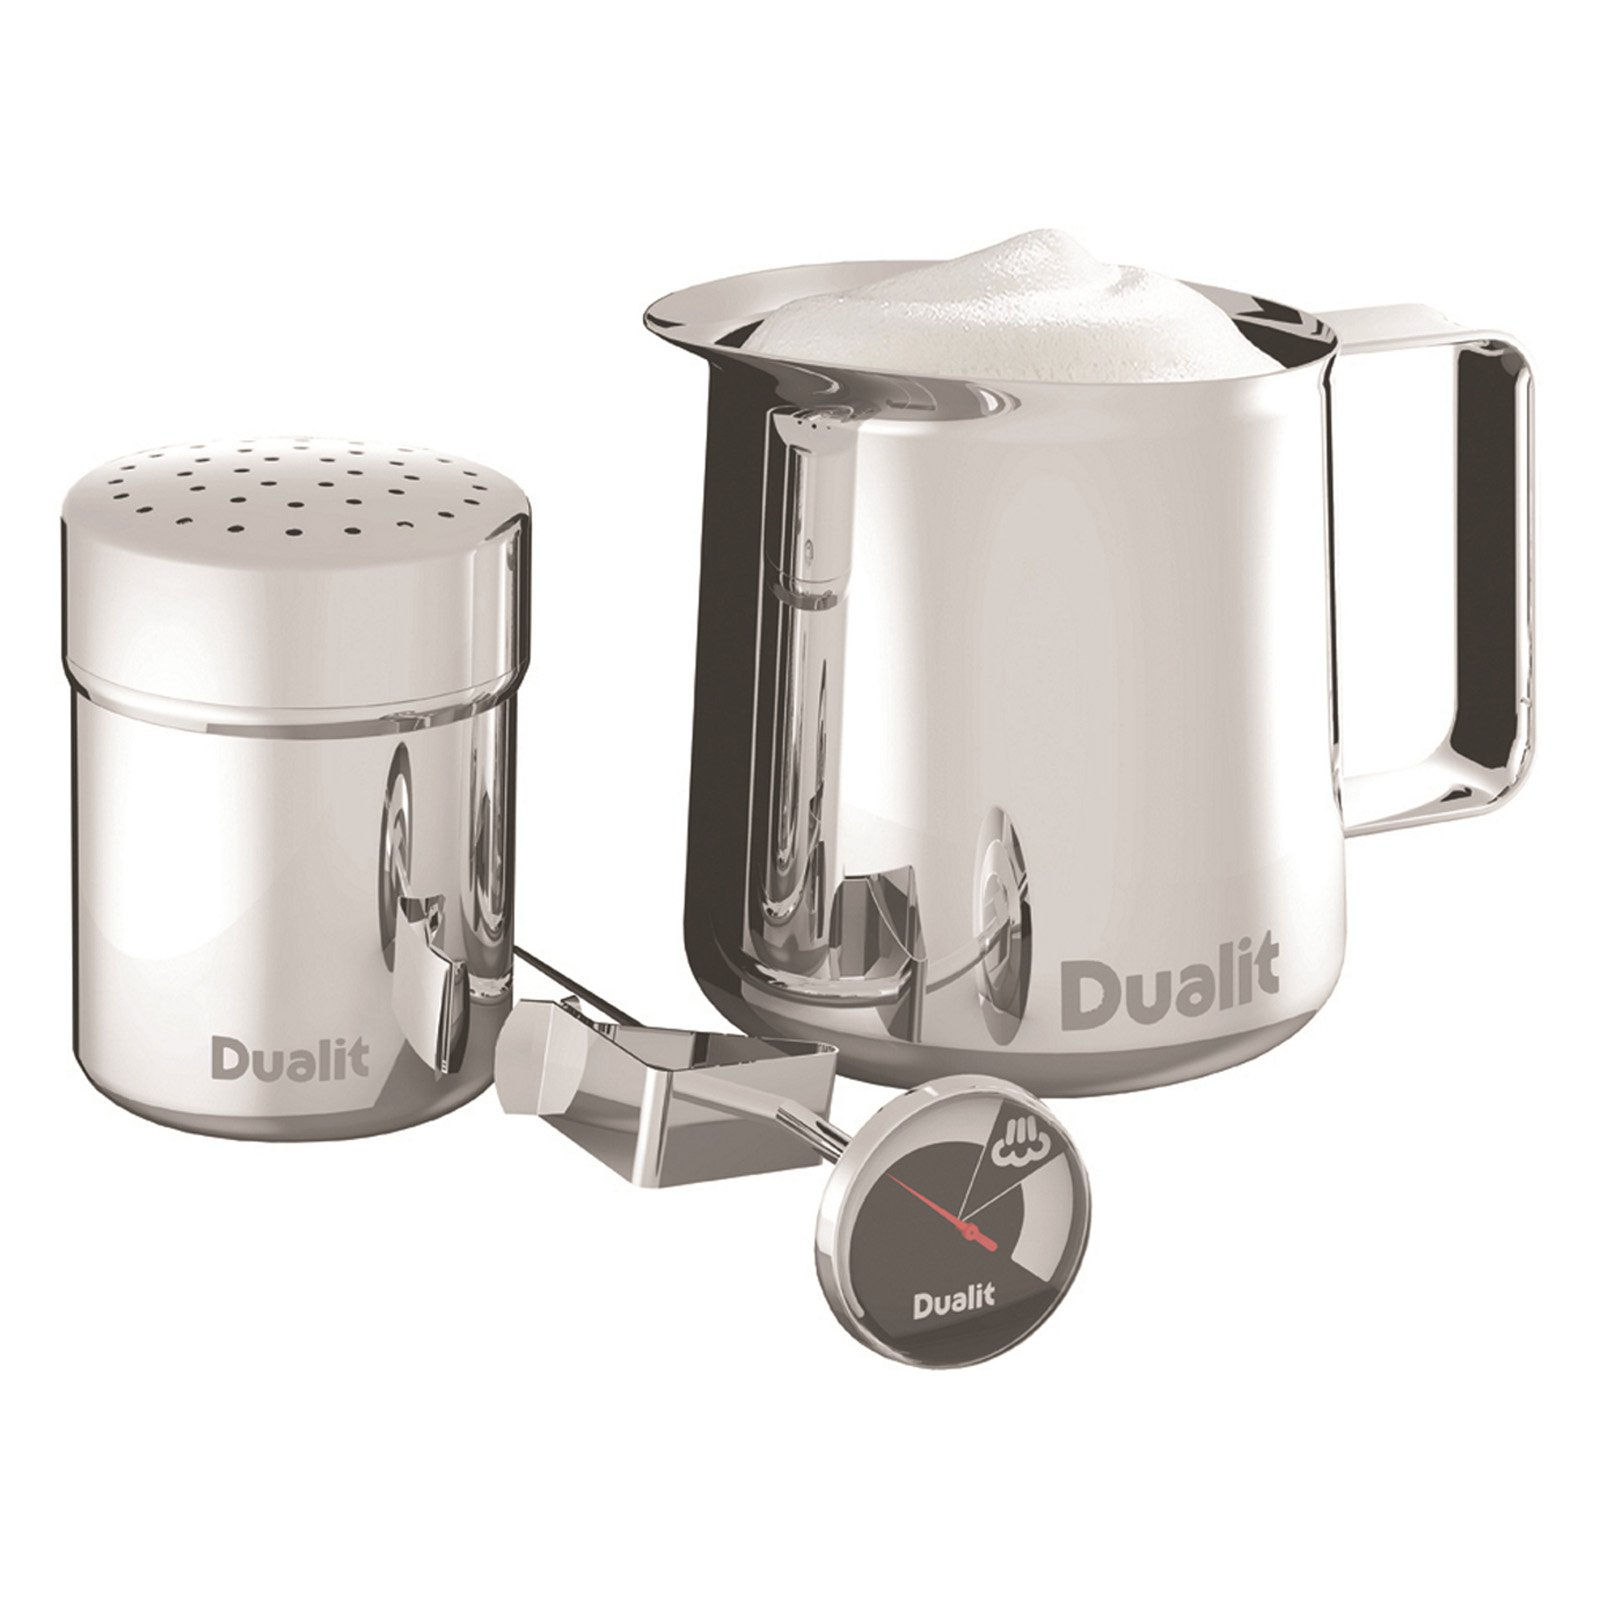 Dualit 85100 Barista Coffee Kit - Stainless Steel